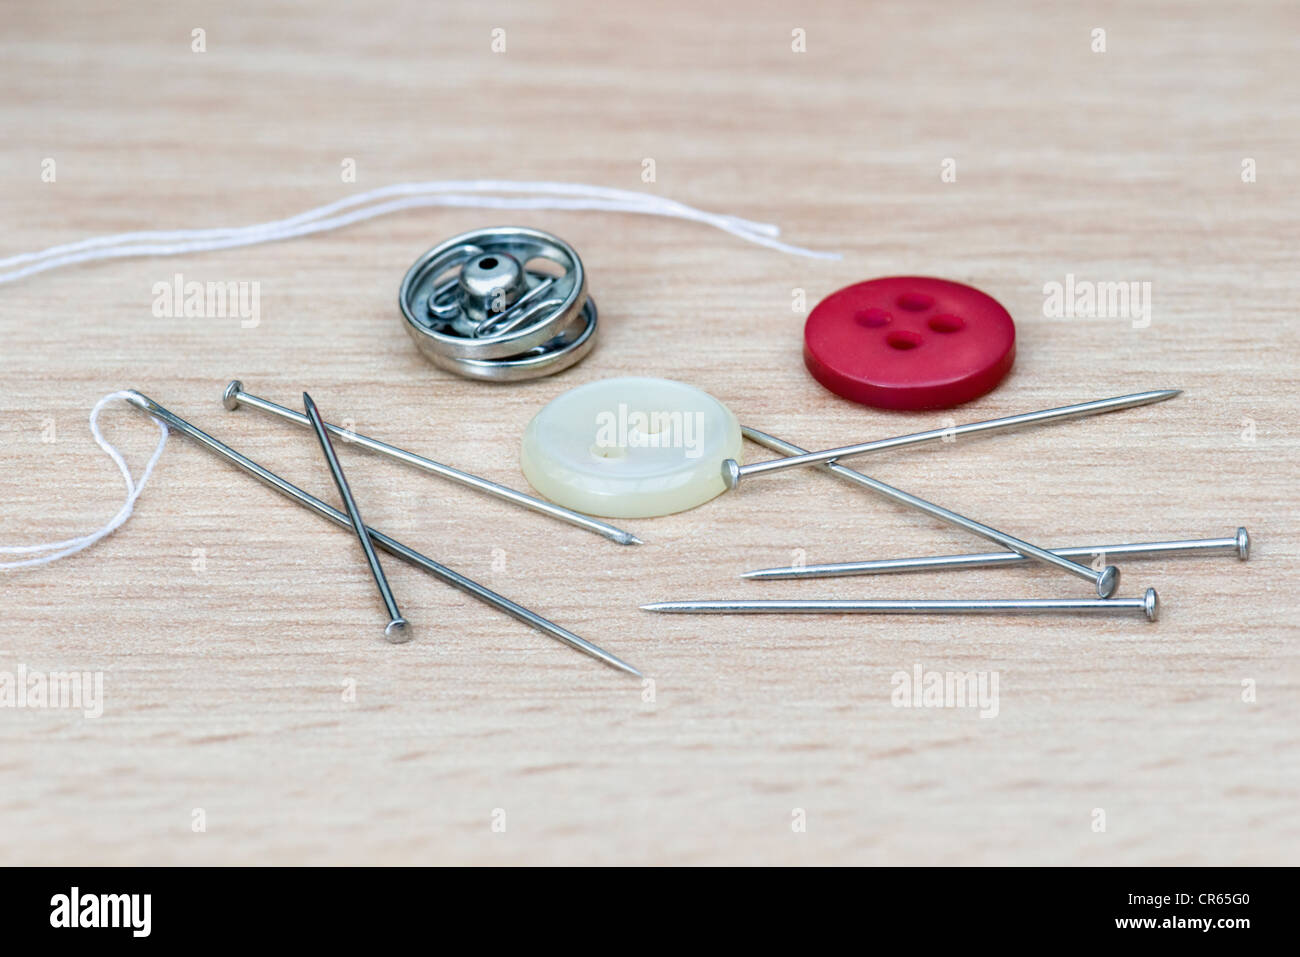 Sewing implements on wooden table including needle and thread, pins, popper and buttons - Stock Image